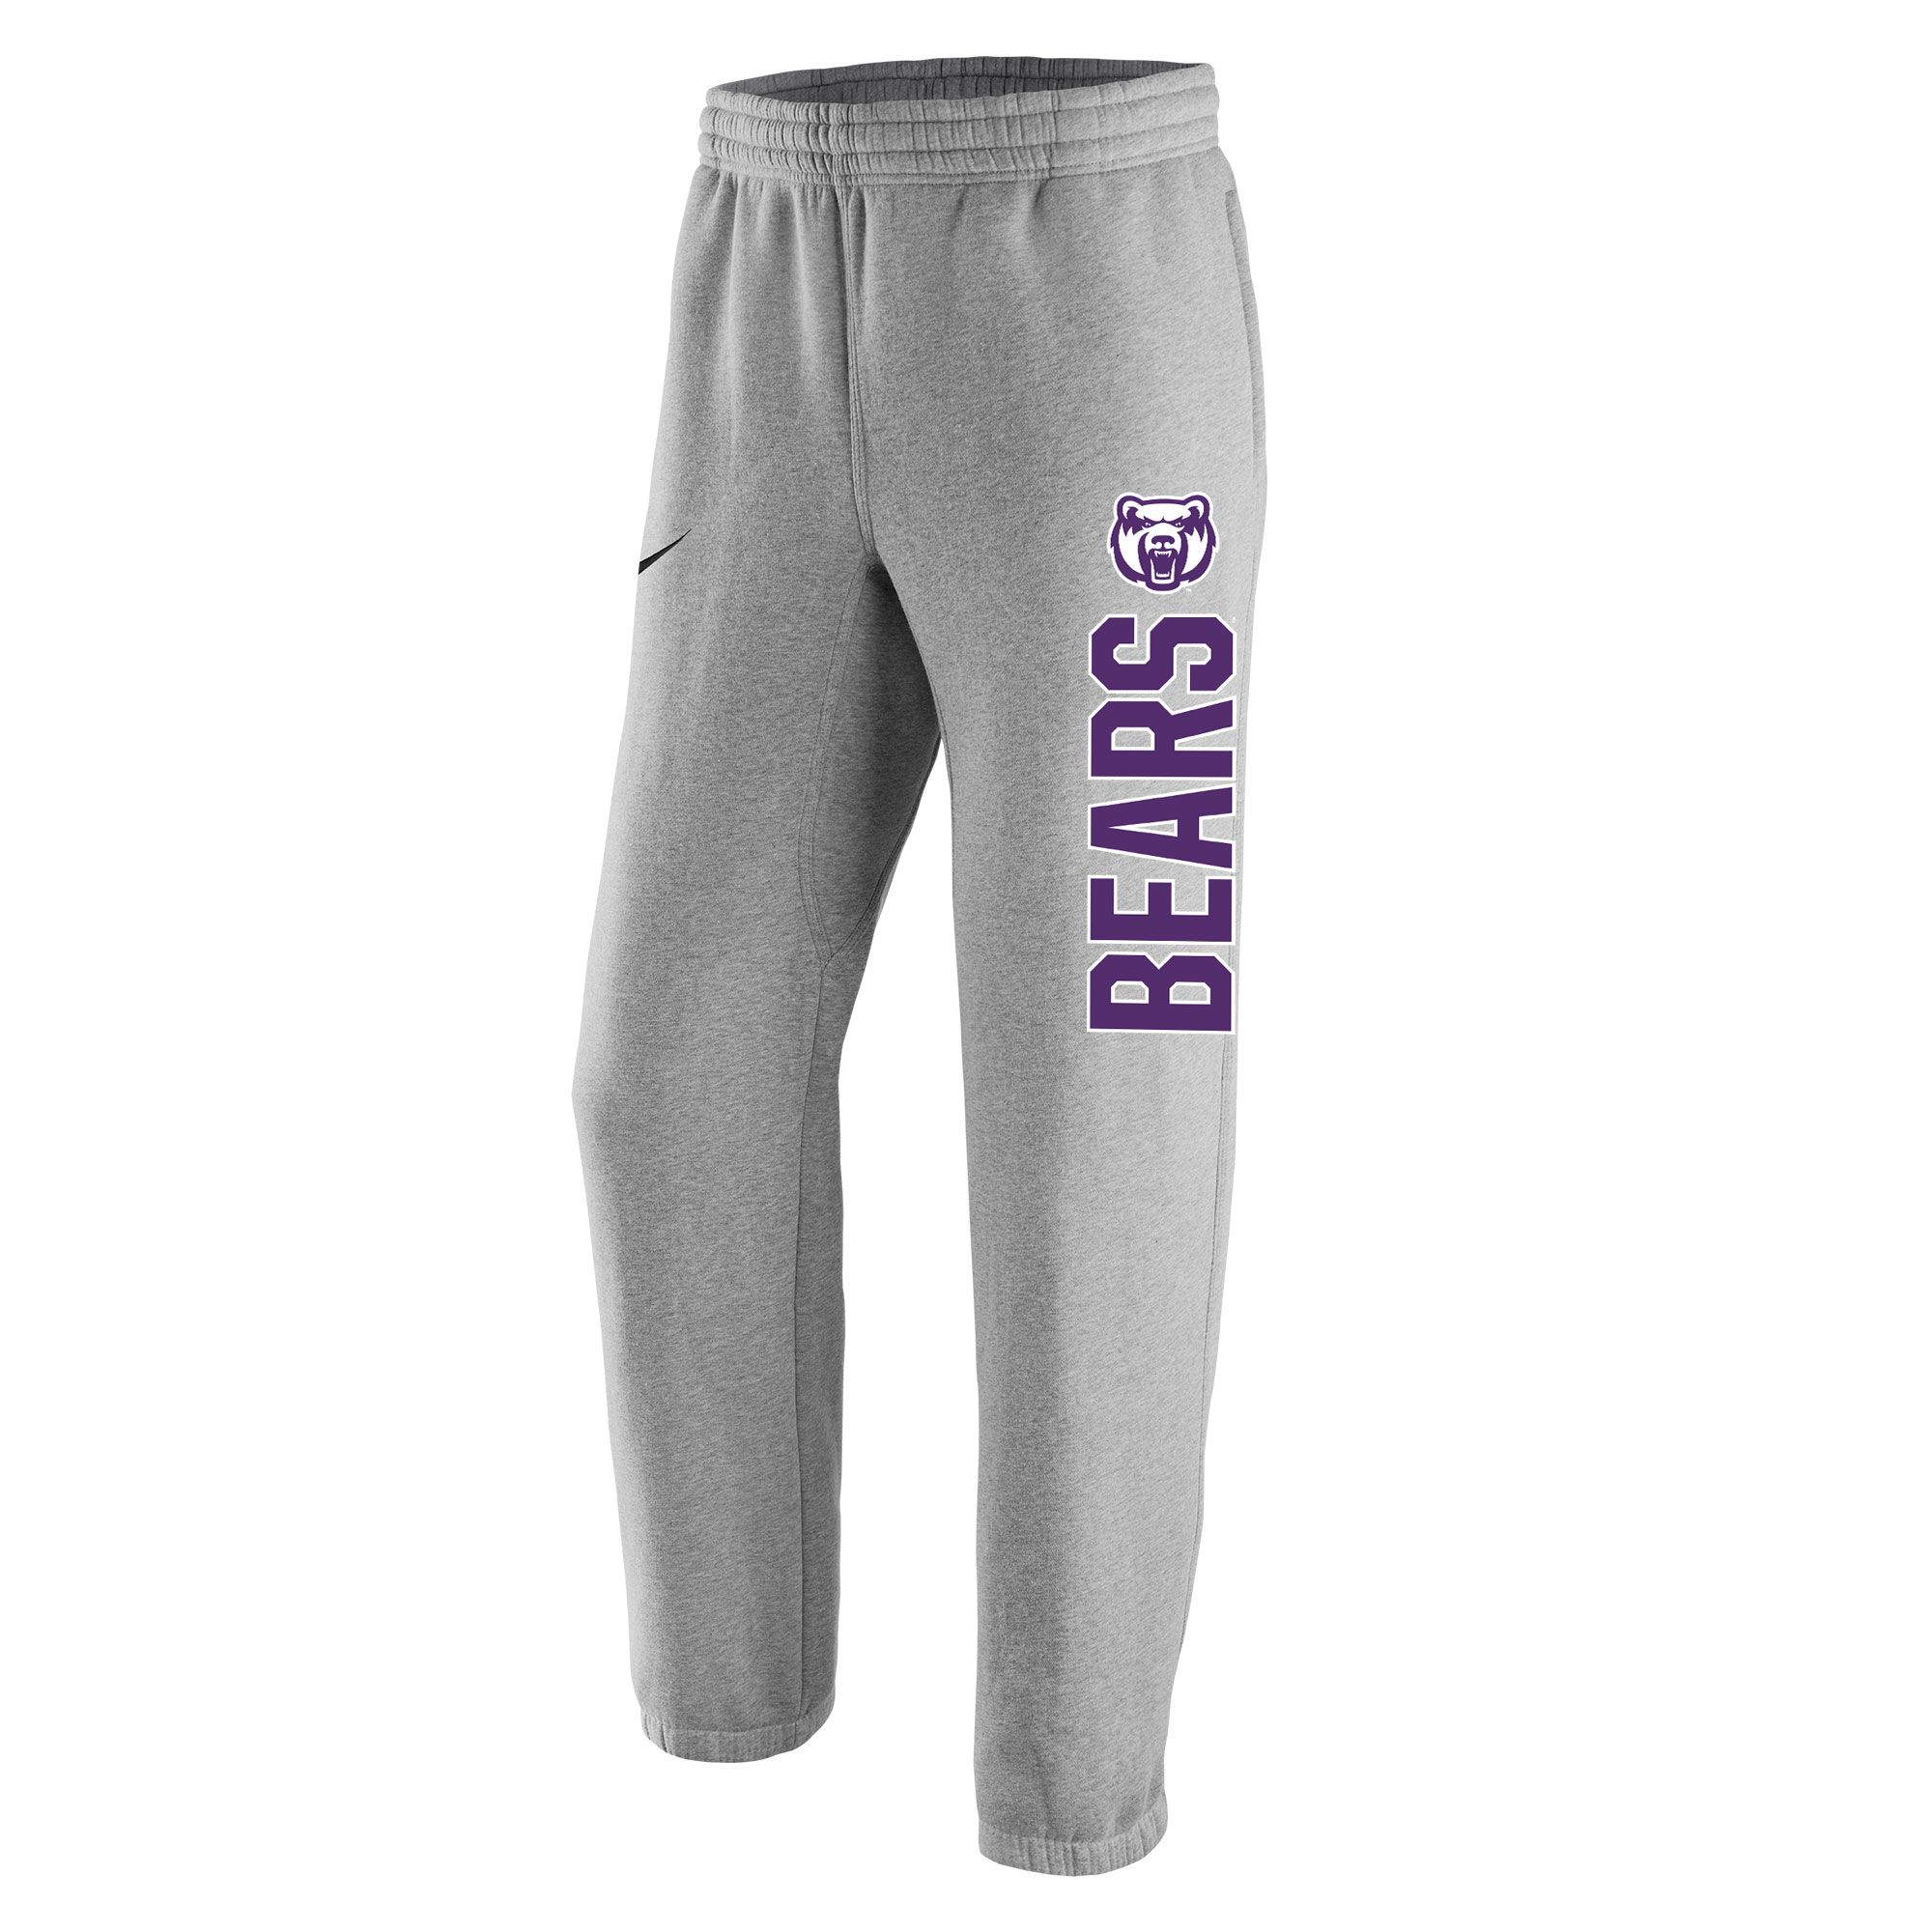 Stadium Club Fleece Pants